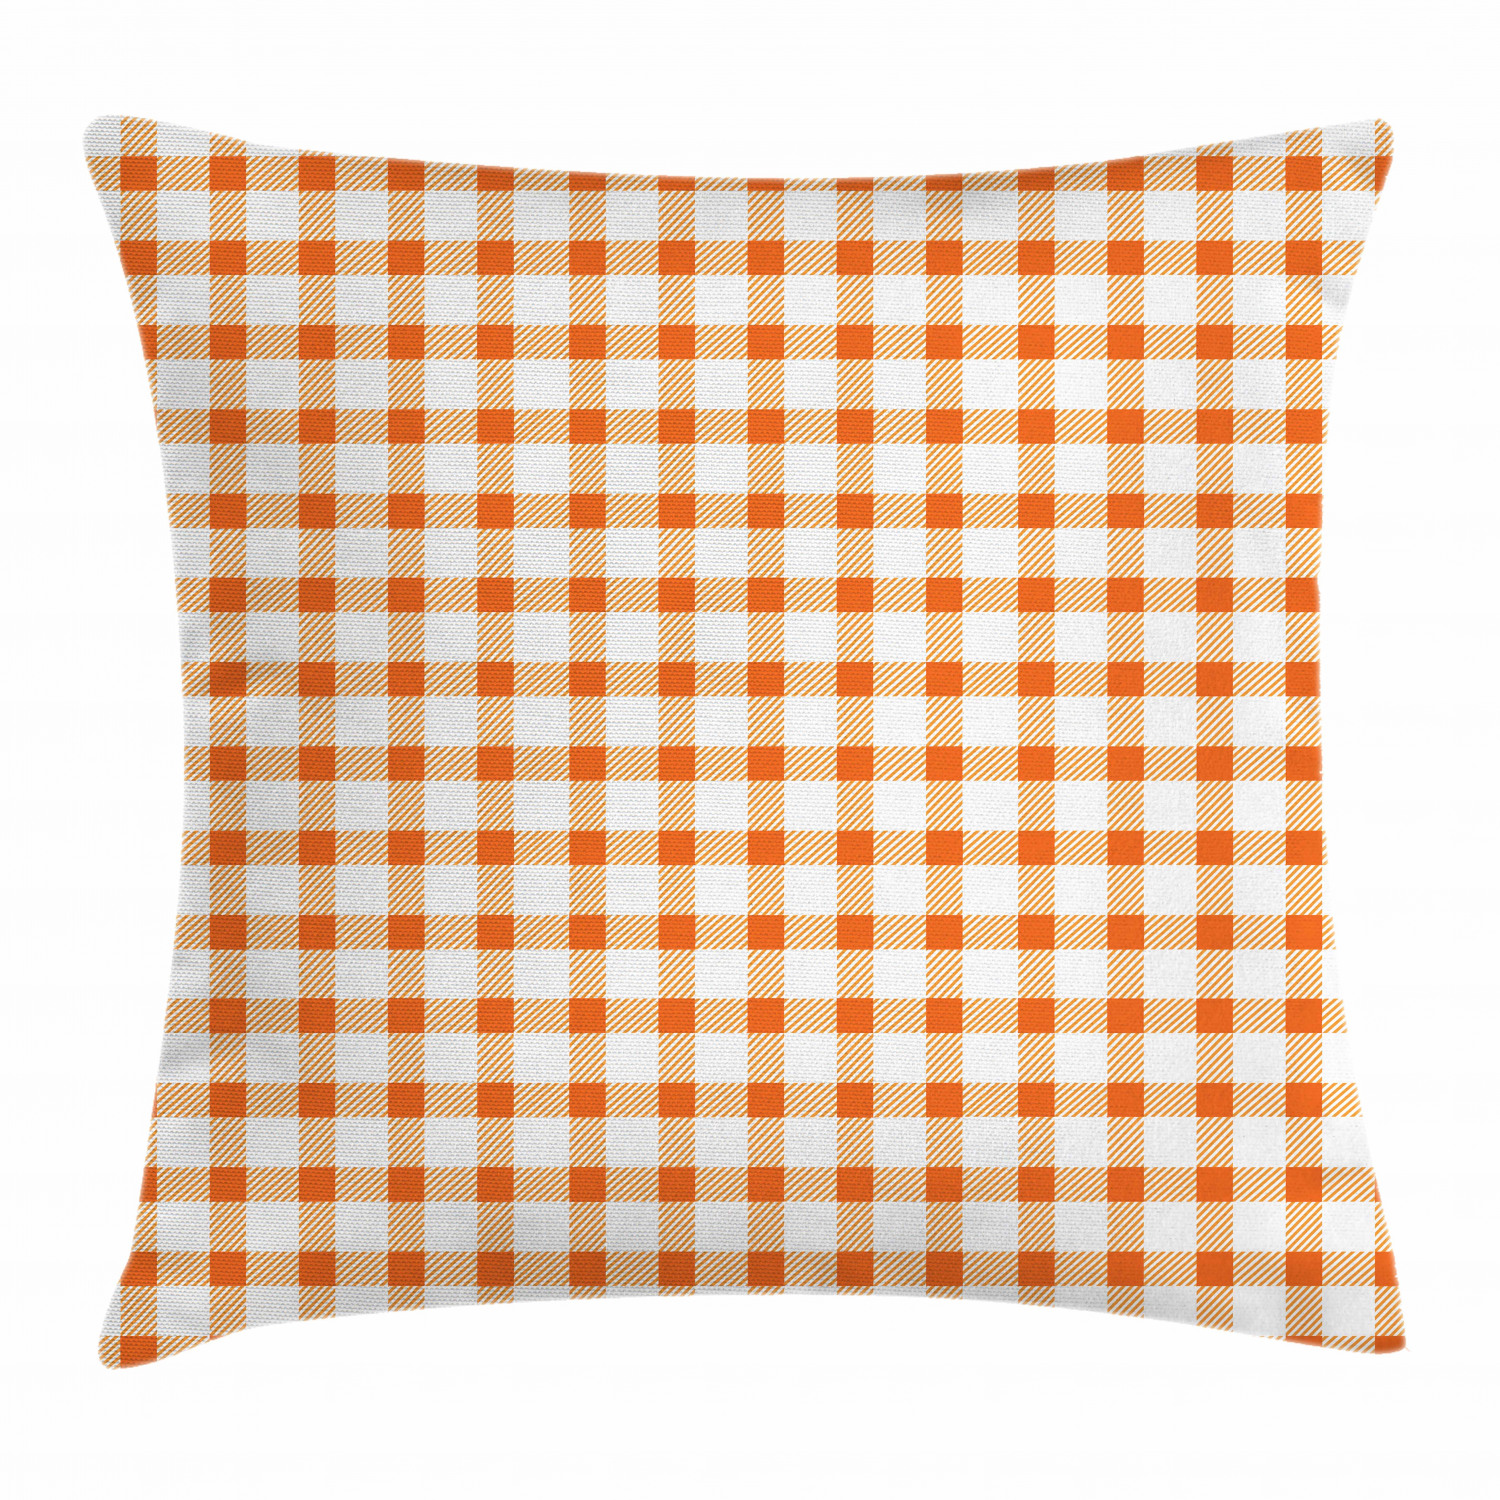 orange and white throw pillow cushion cover retro gingham style checkered squares pattern in warm colors plaid decorative square accent pillow case